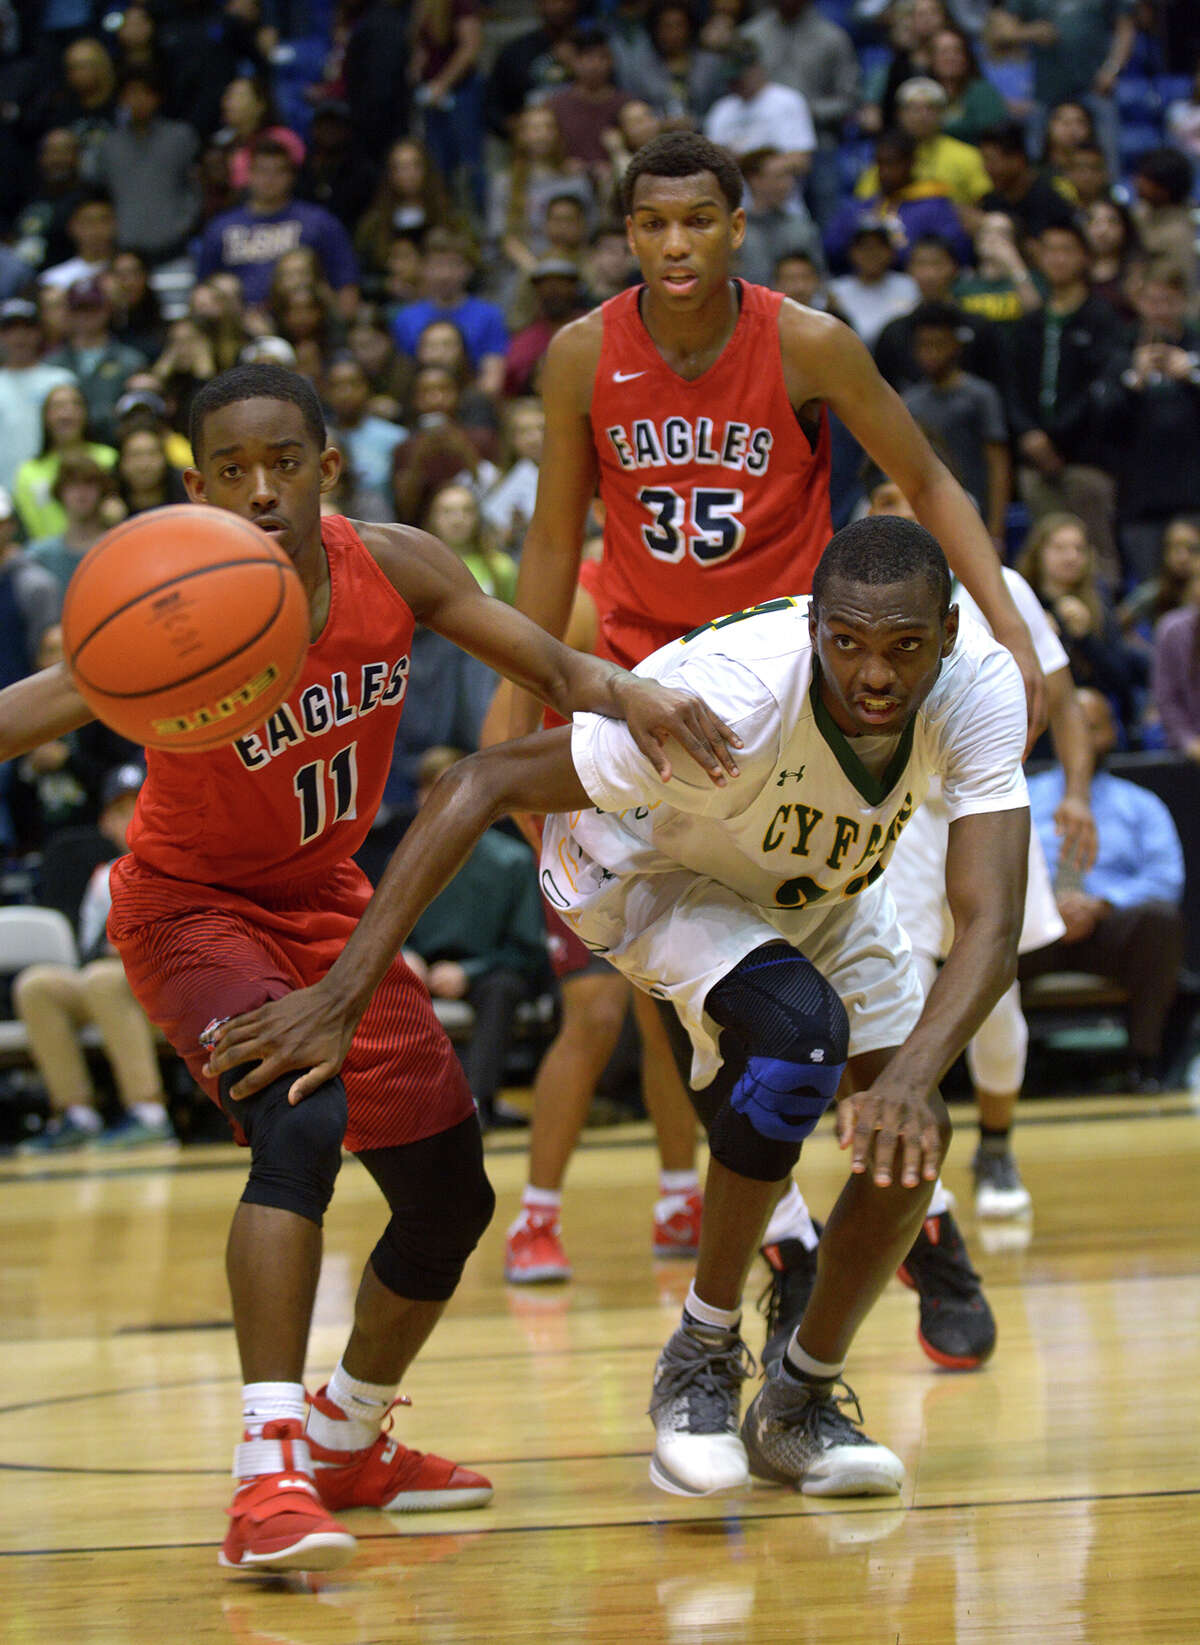 Atascocita junior guard Jakory Champagne (11) hustles for a loose ball with Cy Falls junior forward Deshang Weaver during the 4th quarter of their Class 6A Region III Boys Basketball semifinal at the Richard E. Berry Center in Cypress on Friday, March 3, 2017. (Photo by Jerry Baker/Freelance)